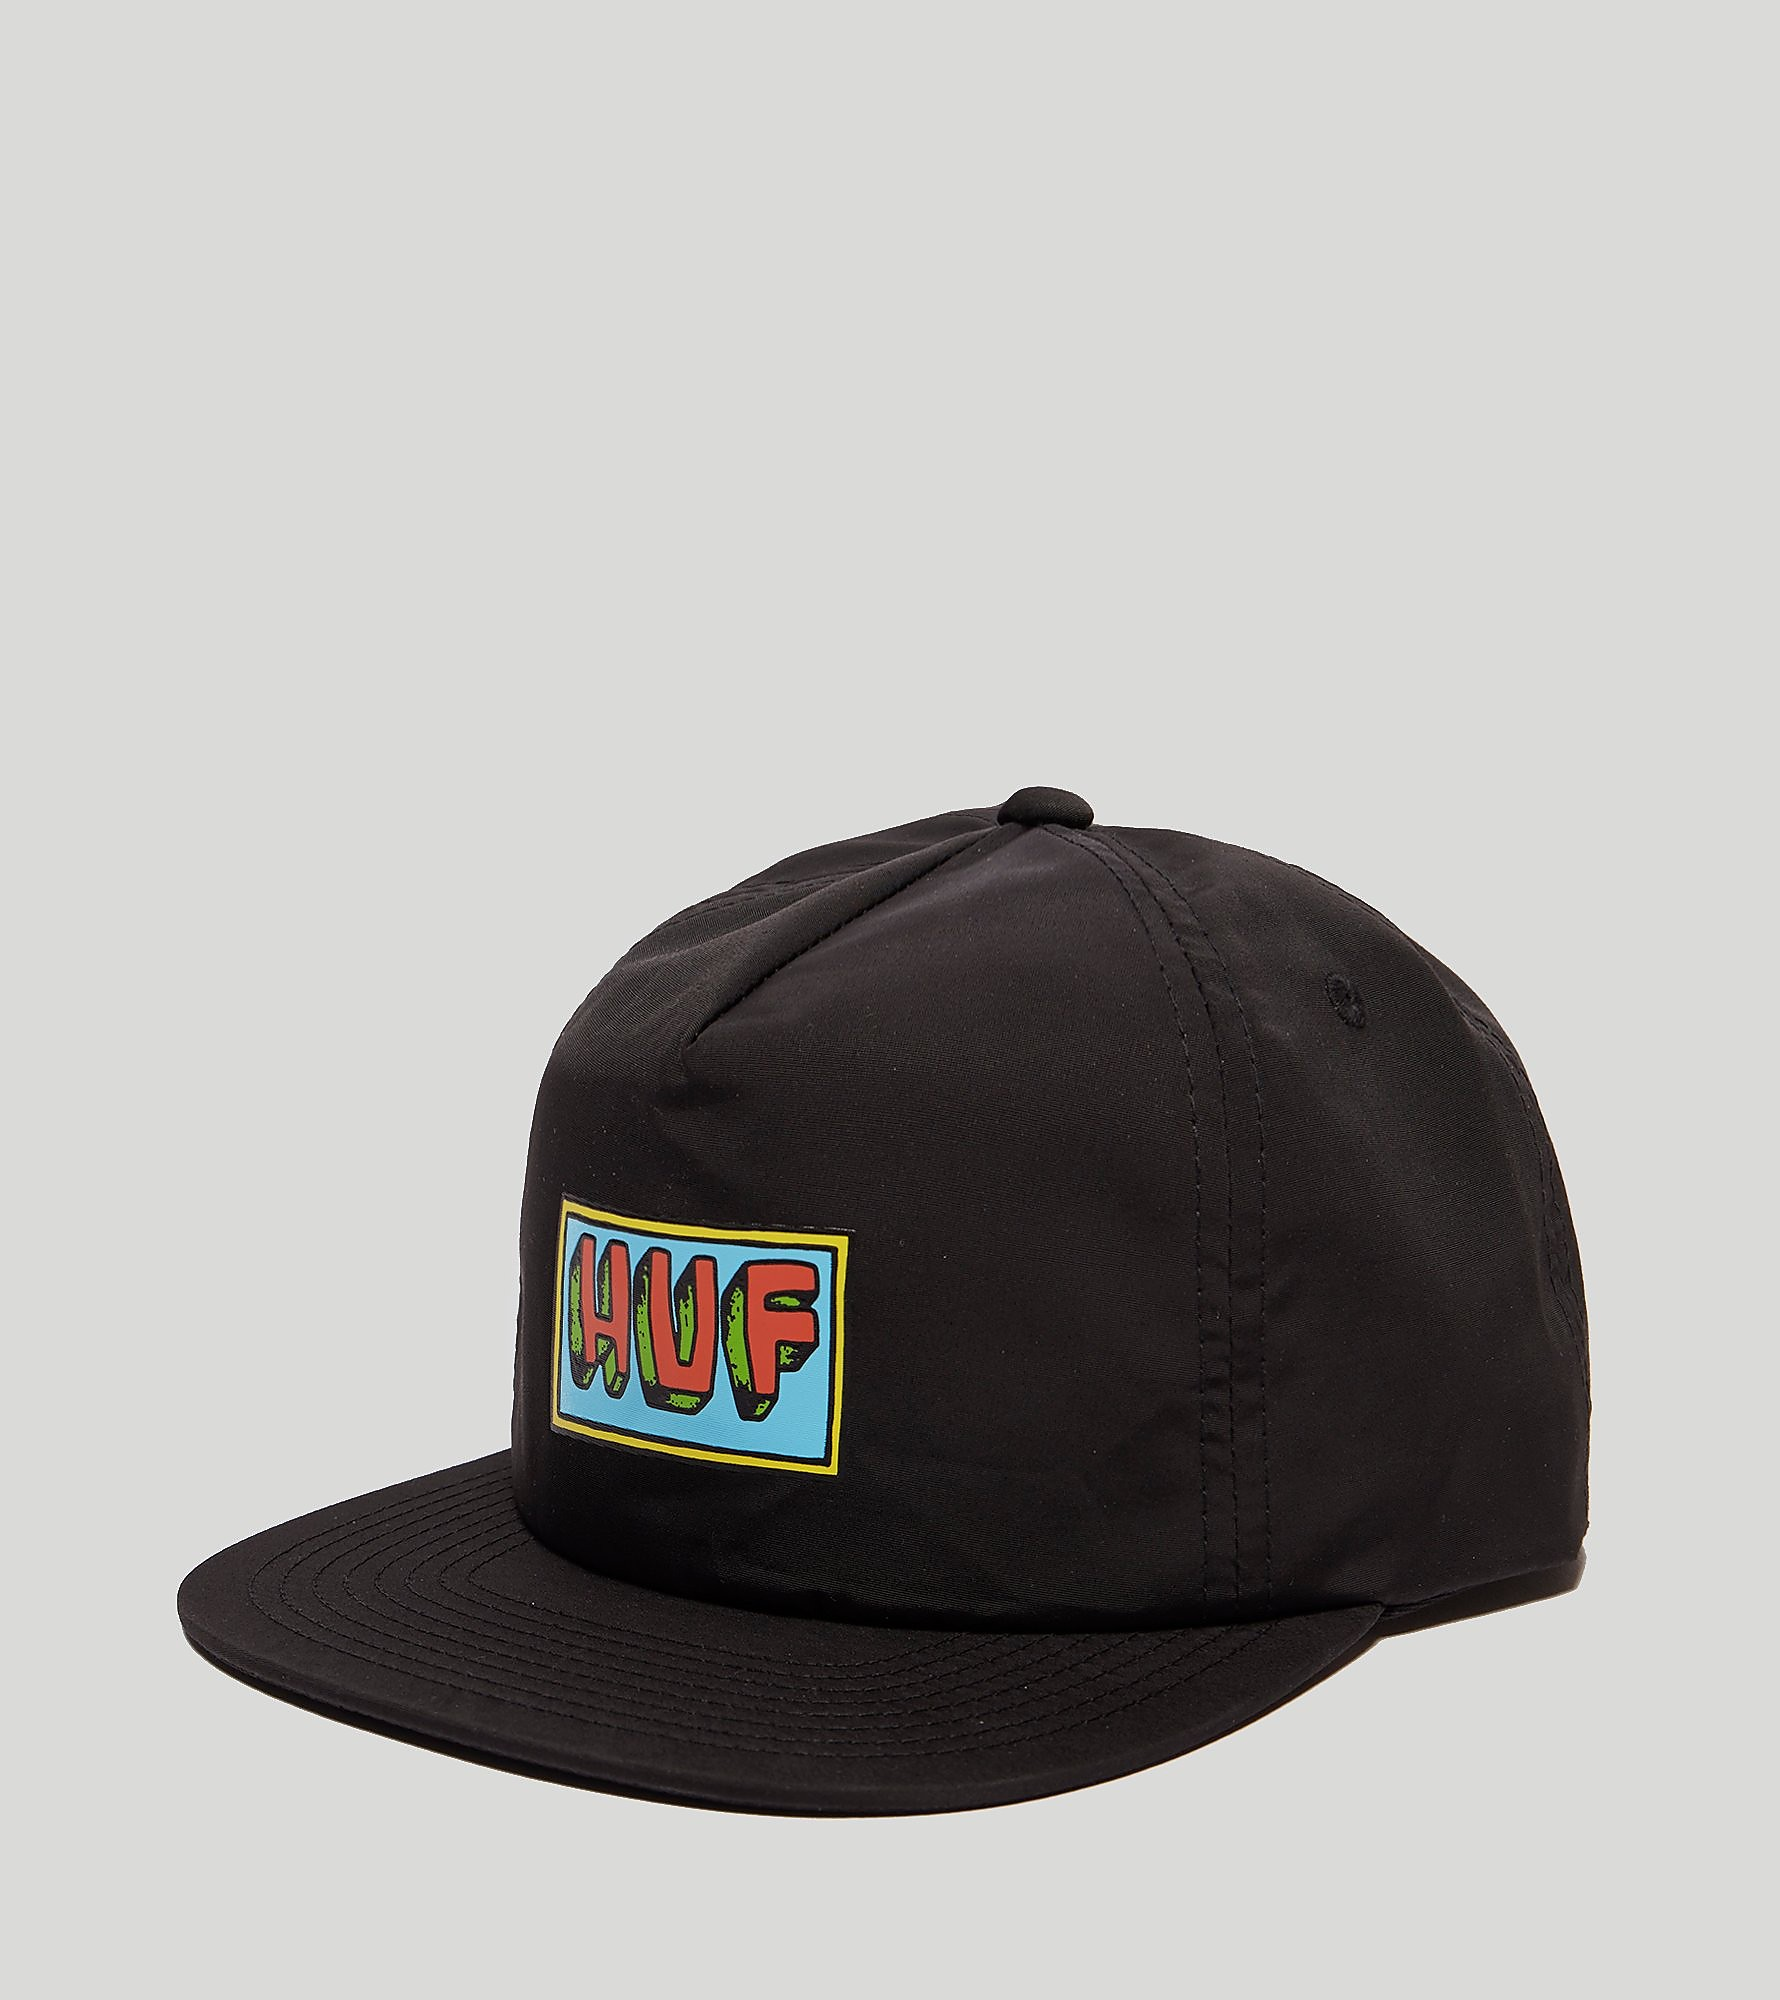 HUF Mar Vista Snapback Closure